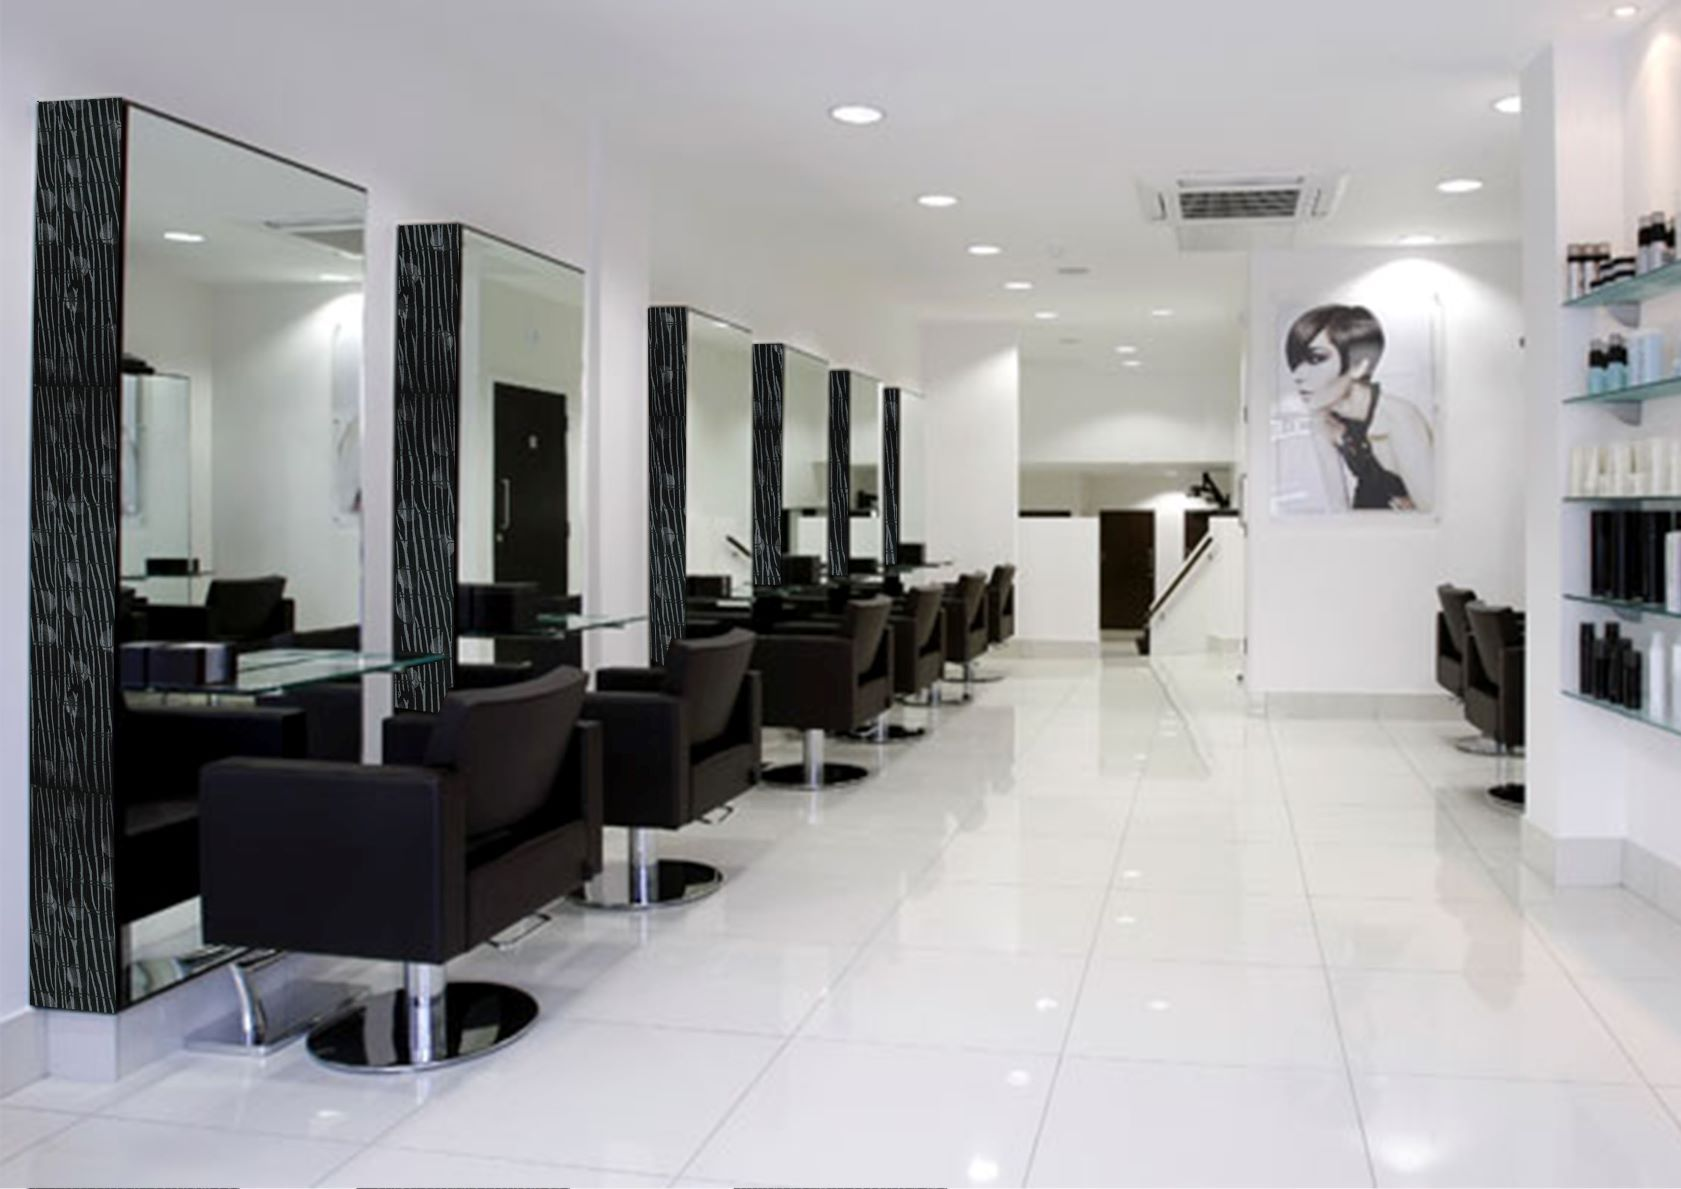 laque noir D2 hairdresser wall cladding